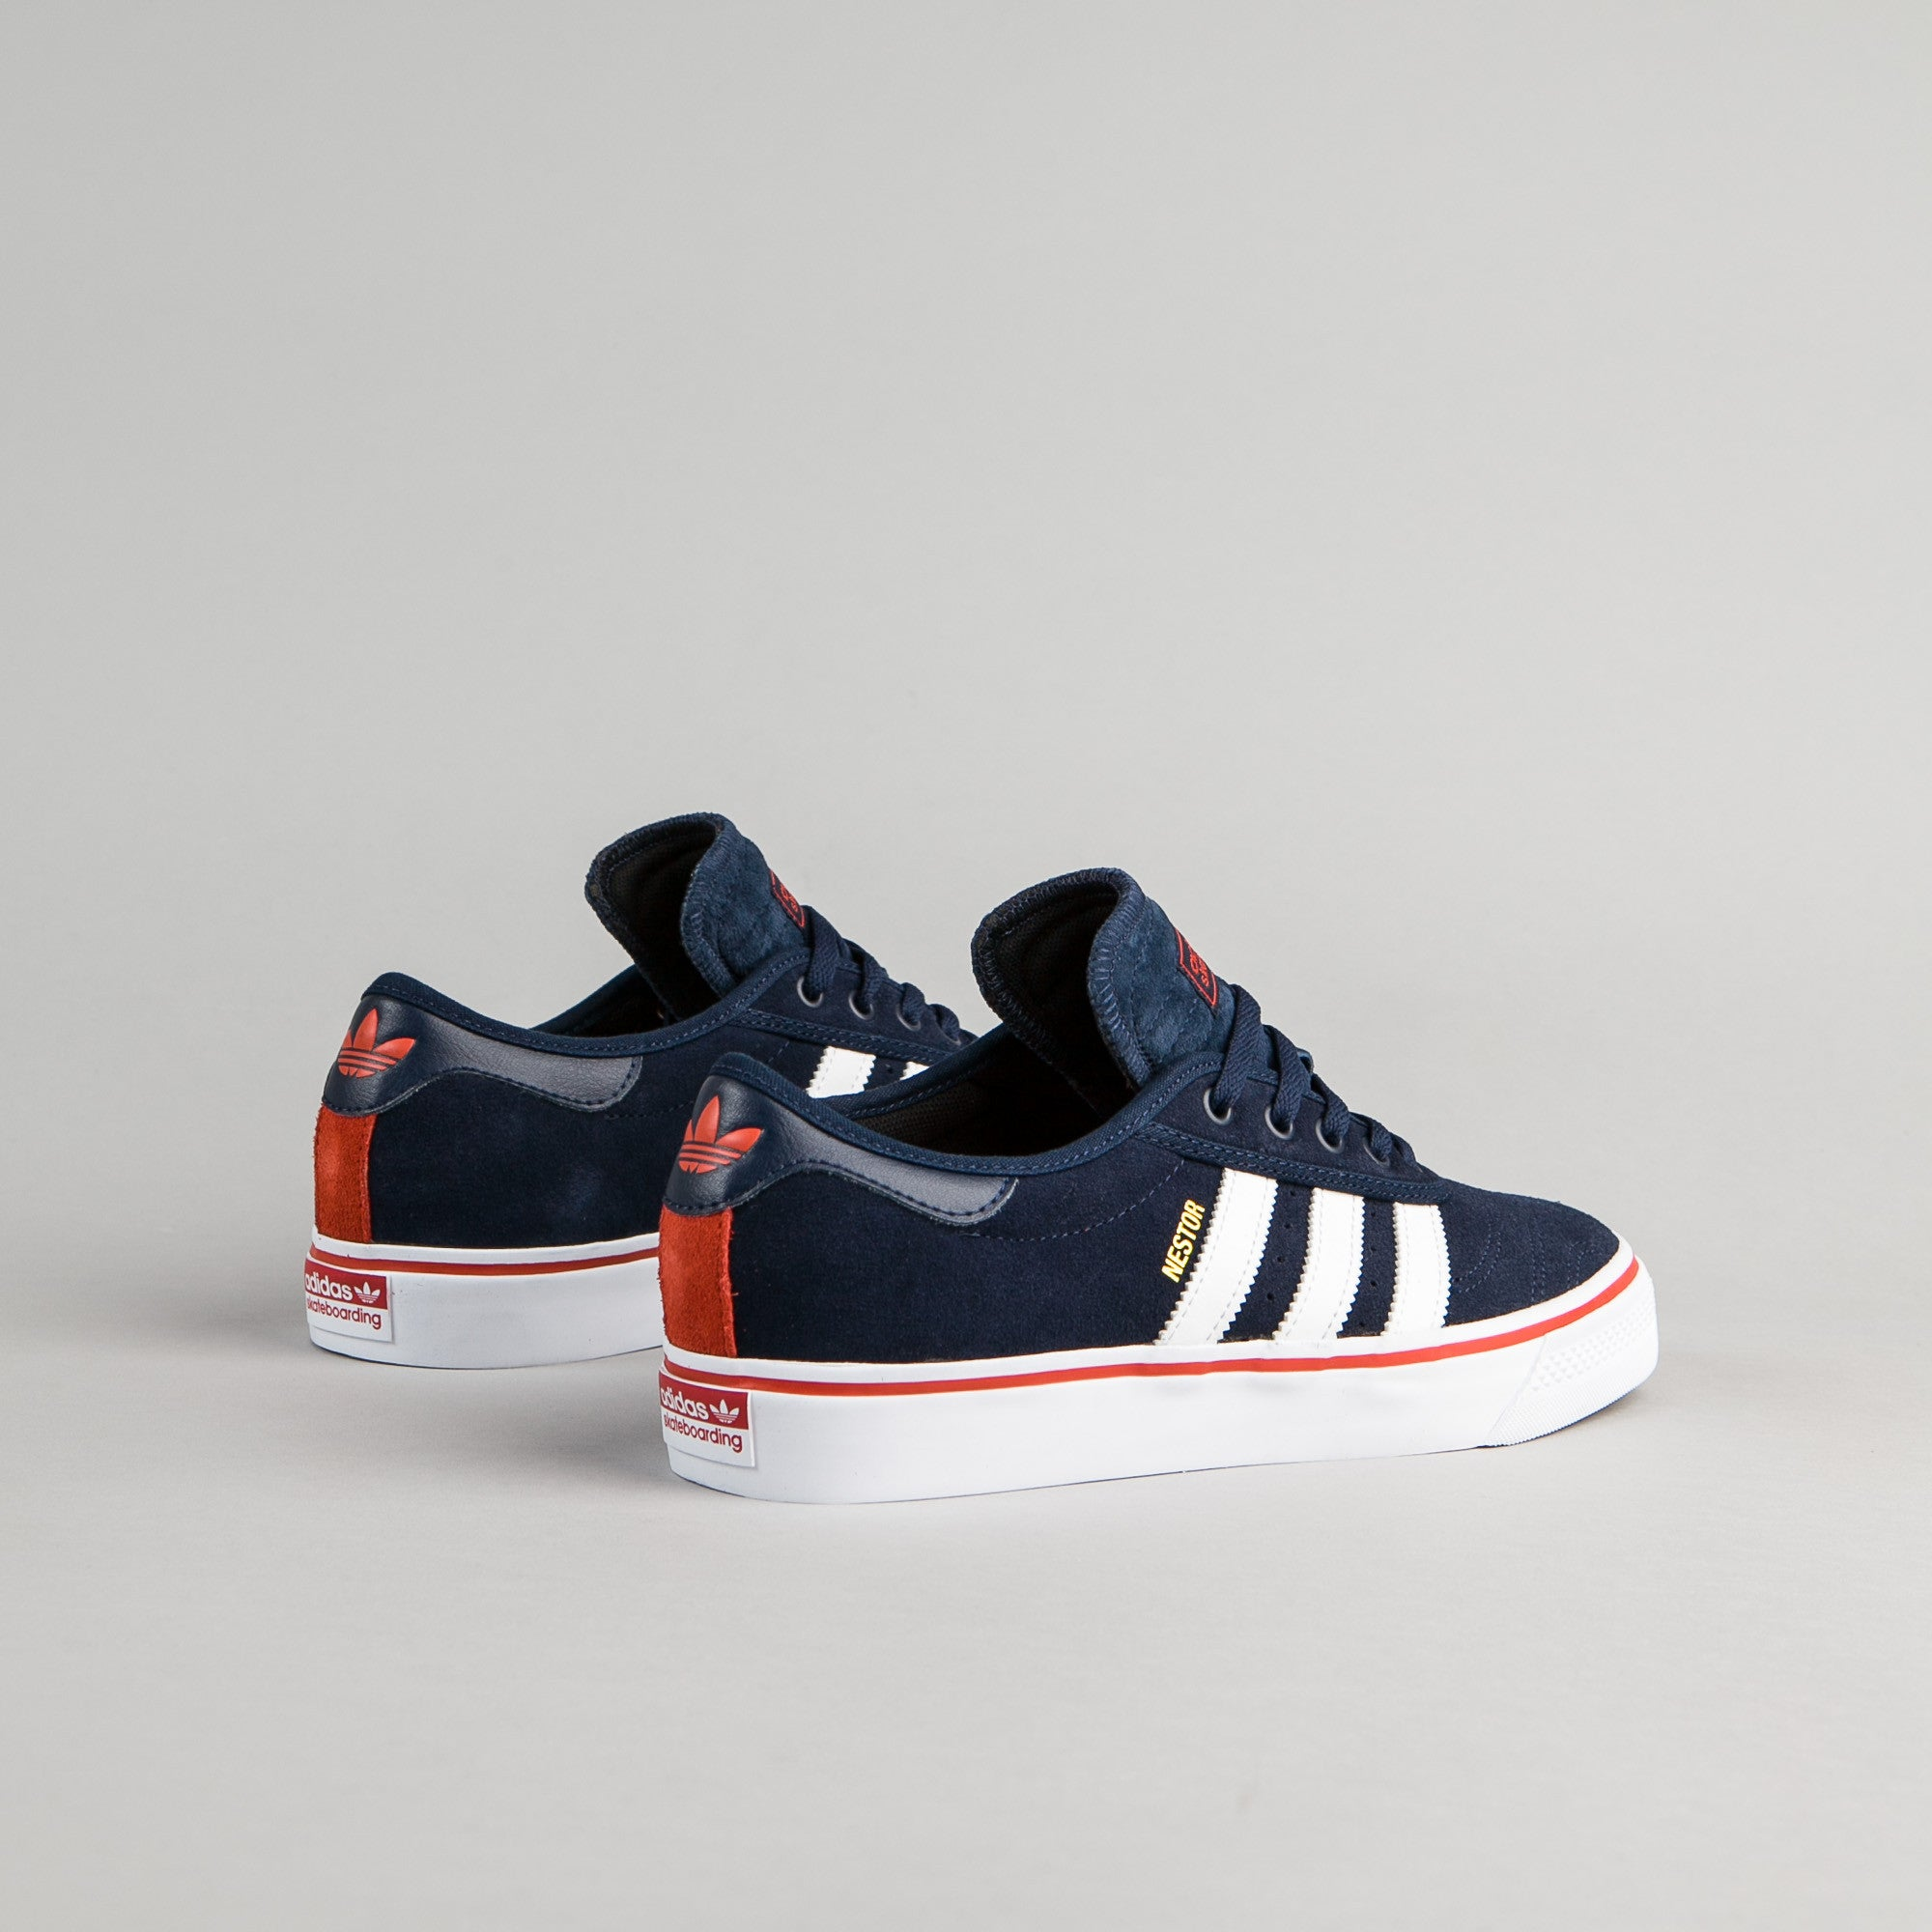 Adidas Adi-Ease Premiere ADV Shoes - Collegiate Navy / White / Craft Chili